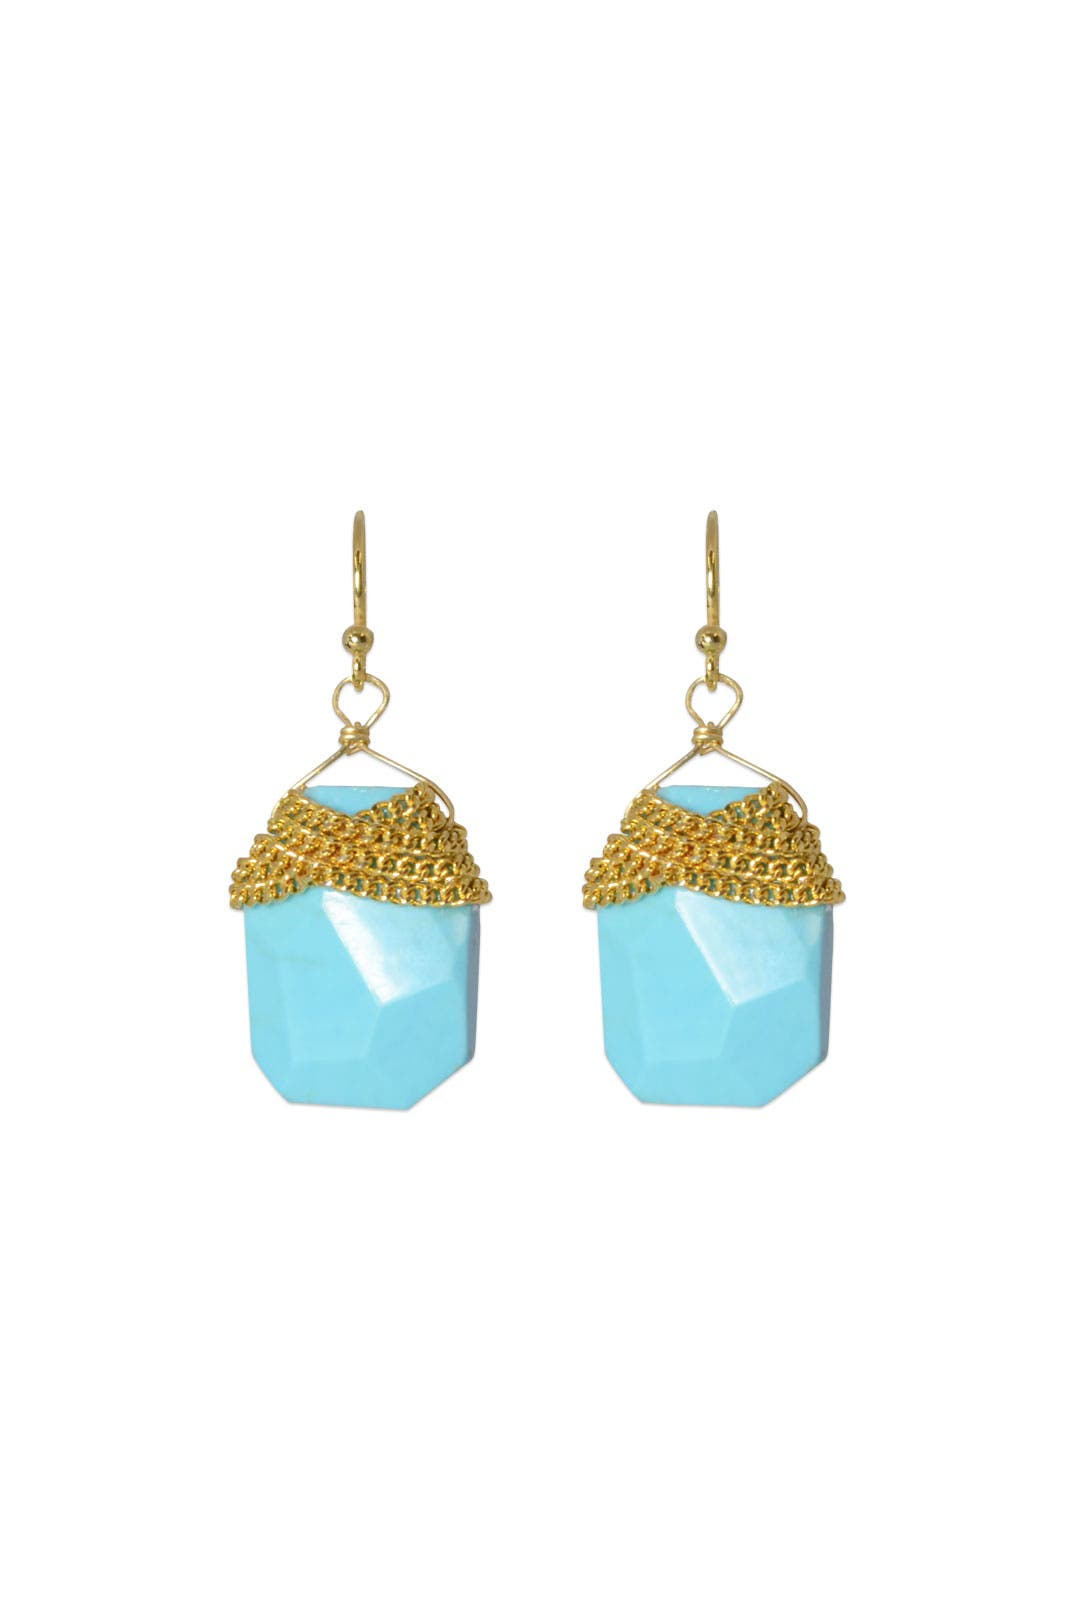 River Isis Earrings by AV Max